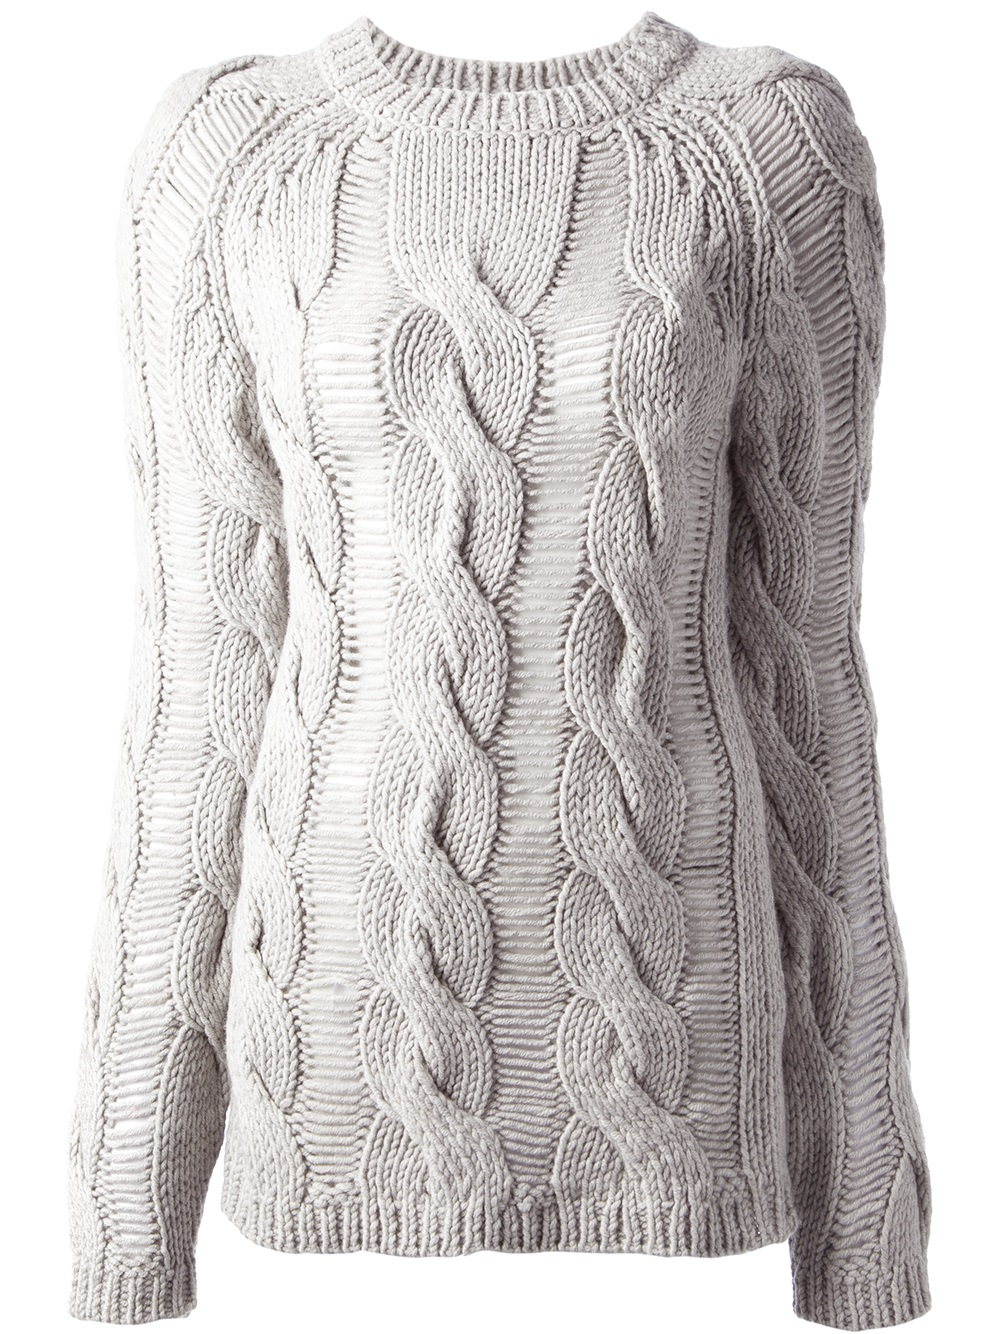 Carven Cable Knit Sweater in Gray | Lyst